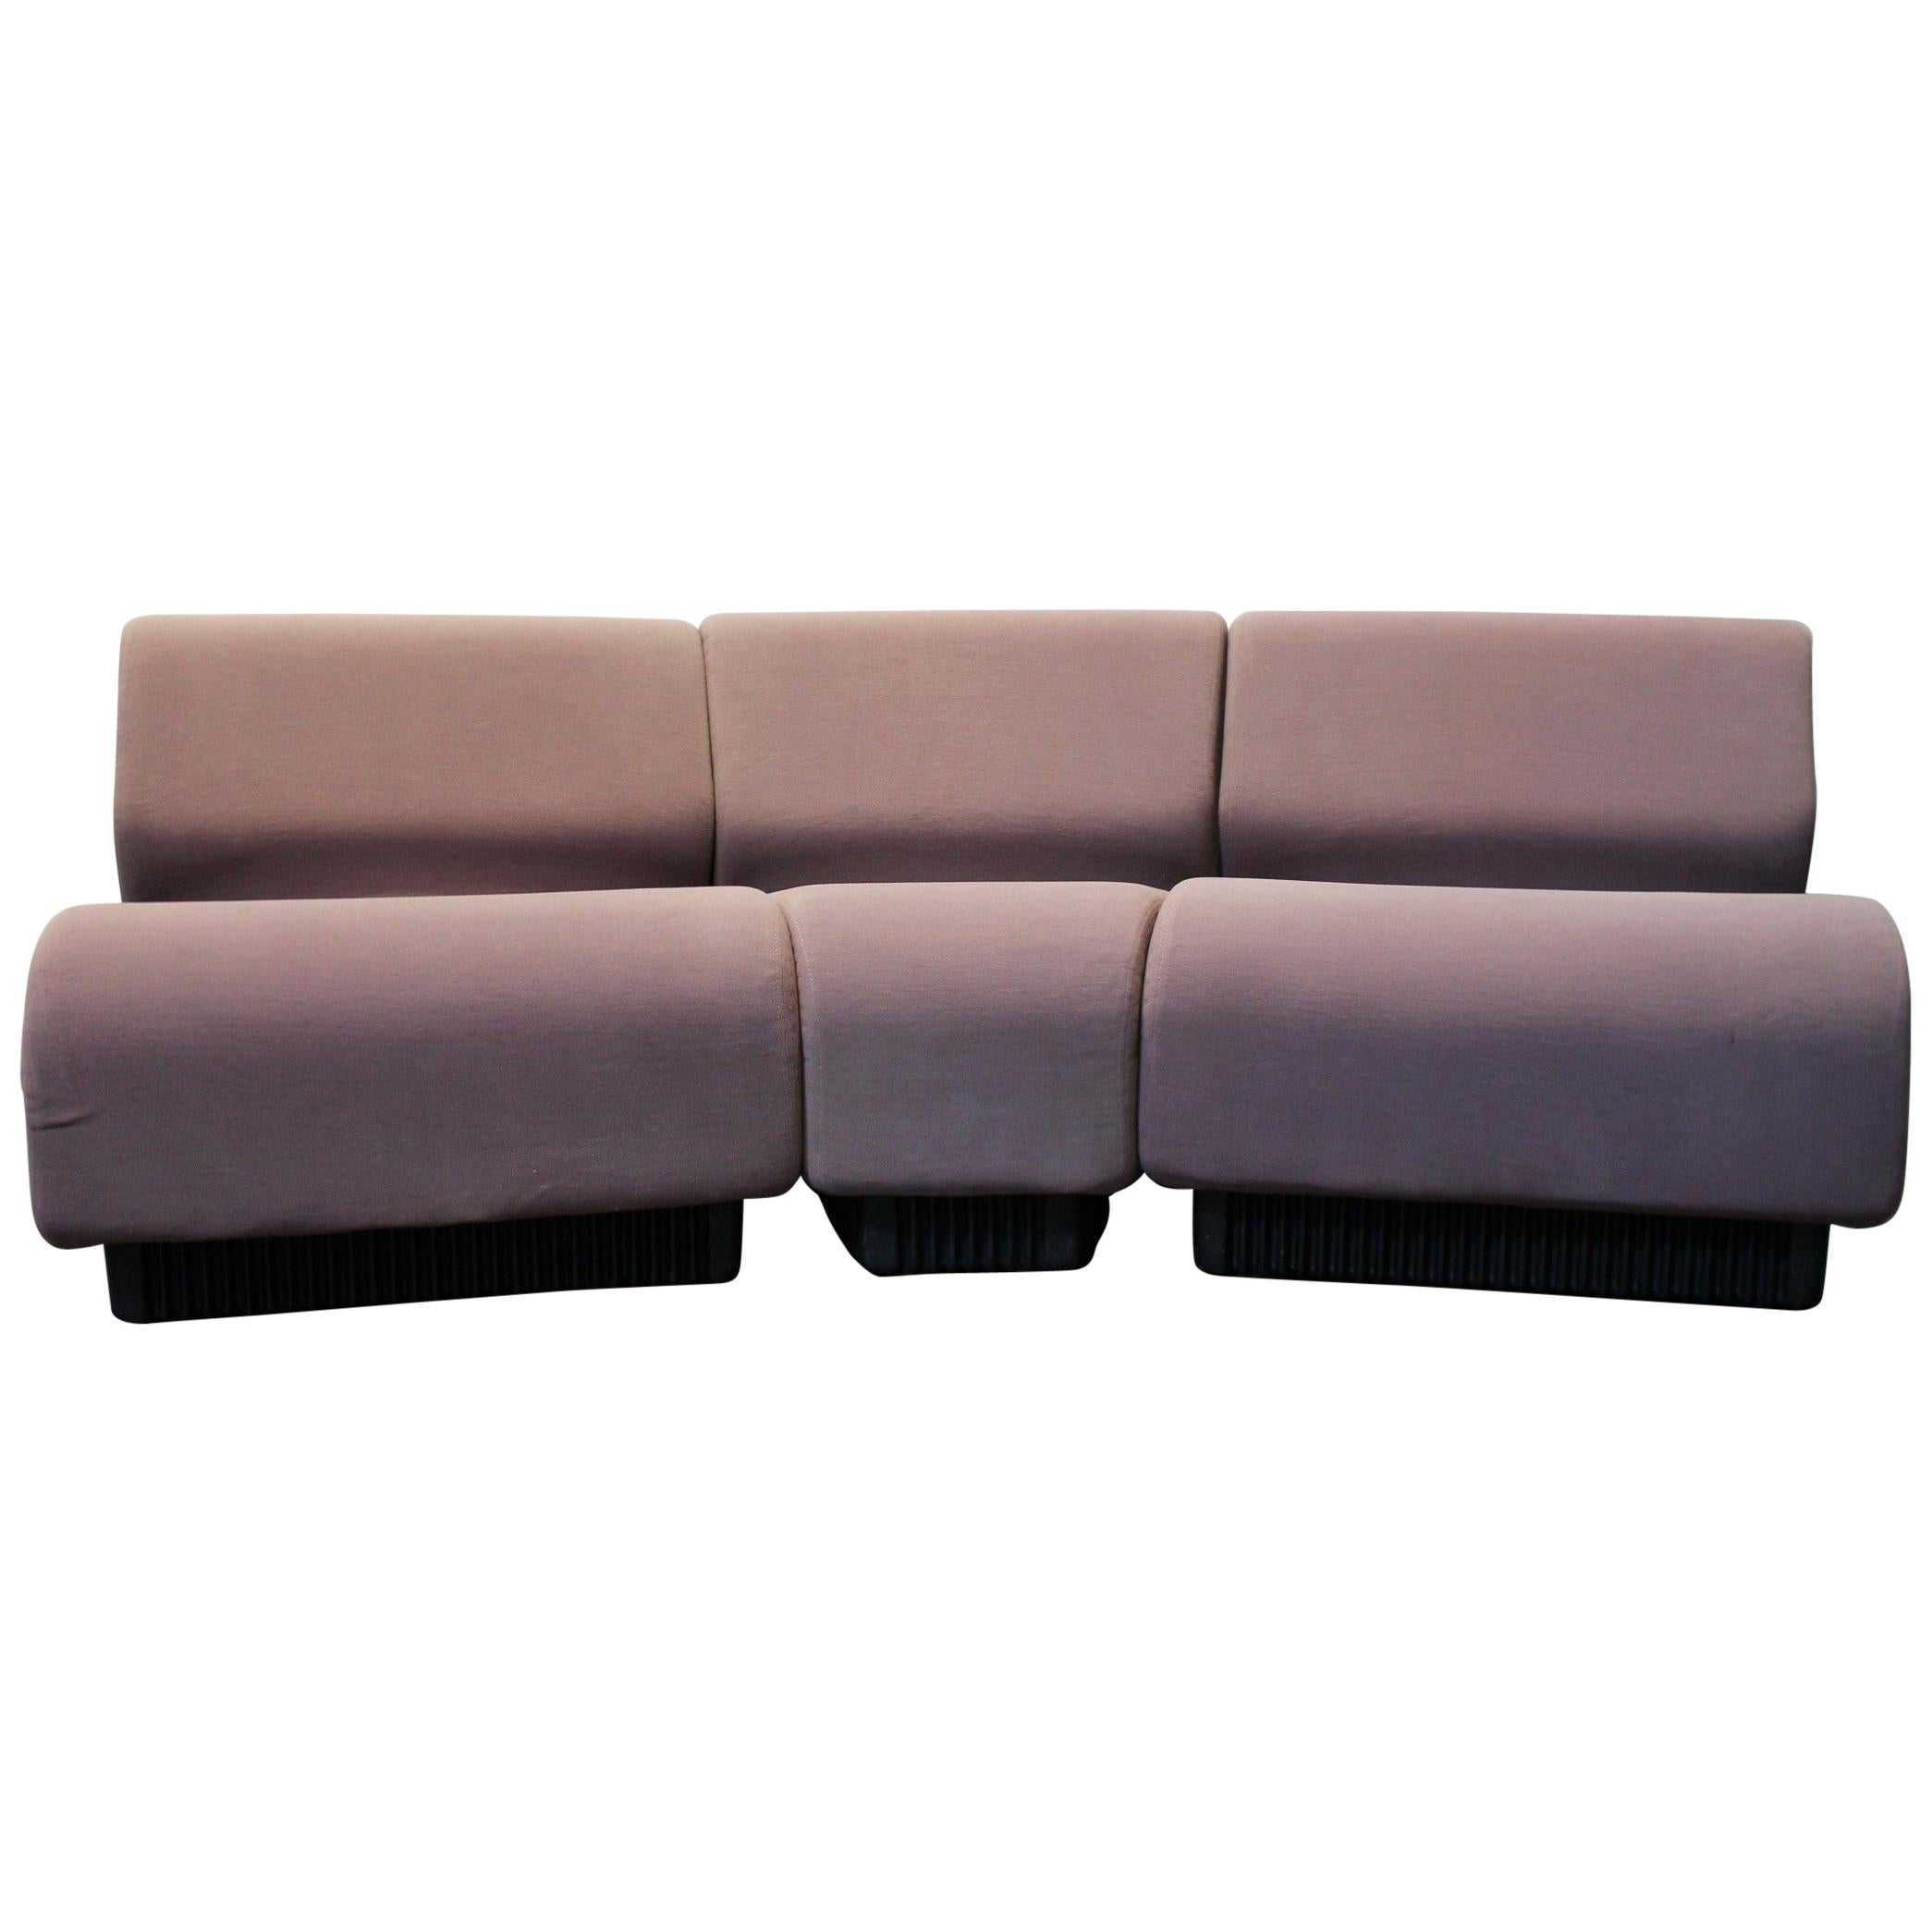 chadwick sofa 2 seater leather nz modern modular settee by don for herman miller sale